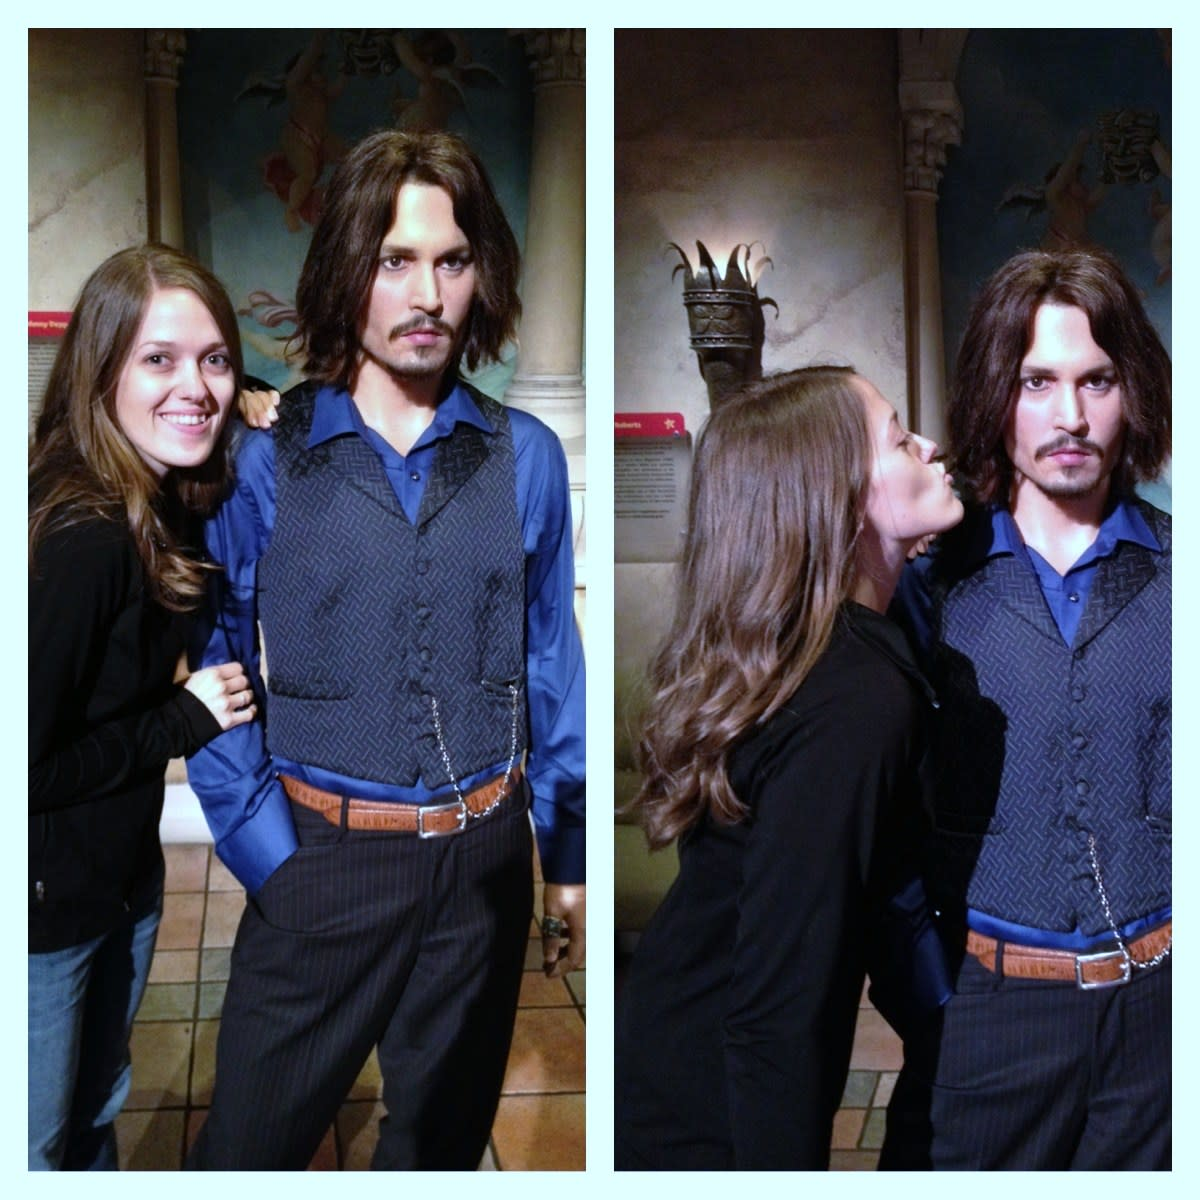 My daughter, Michelle Stoker, met Johnny Depp at the Wax Museum. She said he was a bit quiet. He didn't say much :)